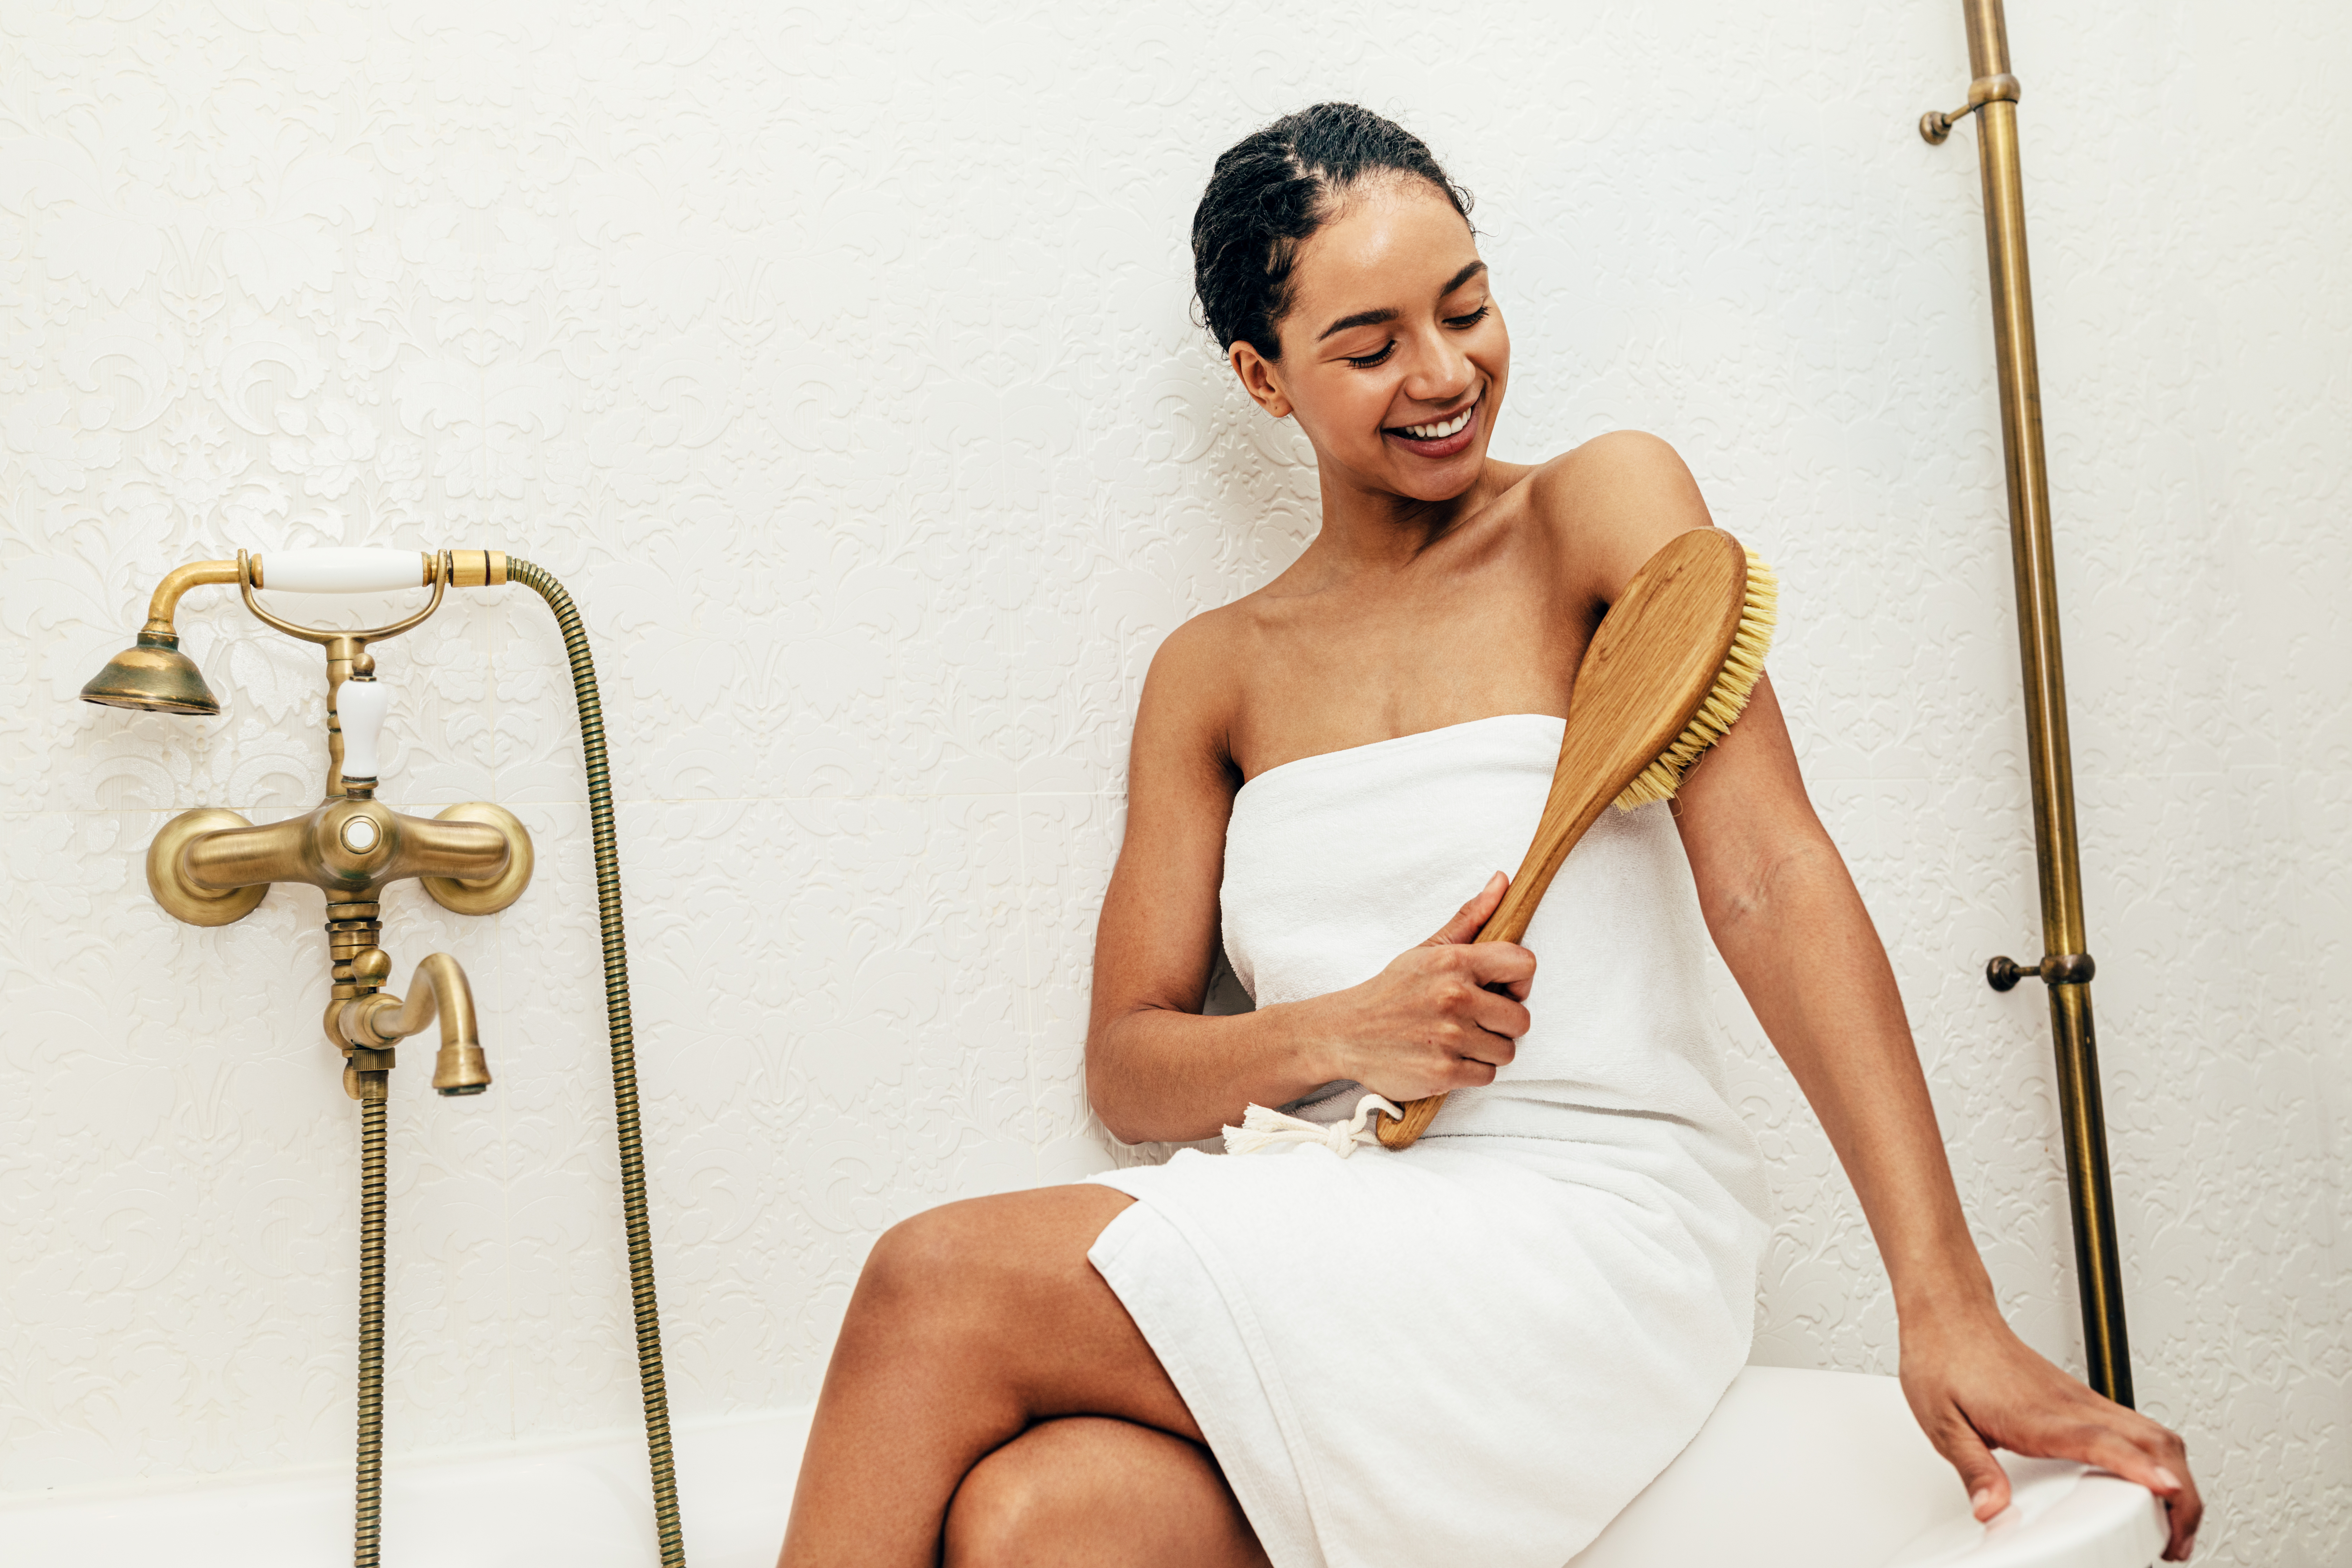 Canva - Smiling woman wrapped in white towel sitting on bath and dry brushing her arm